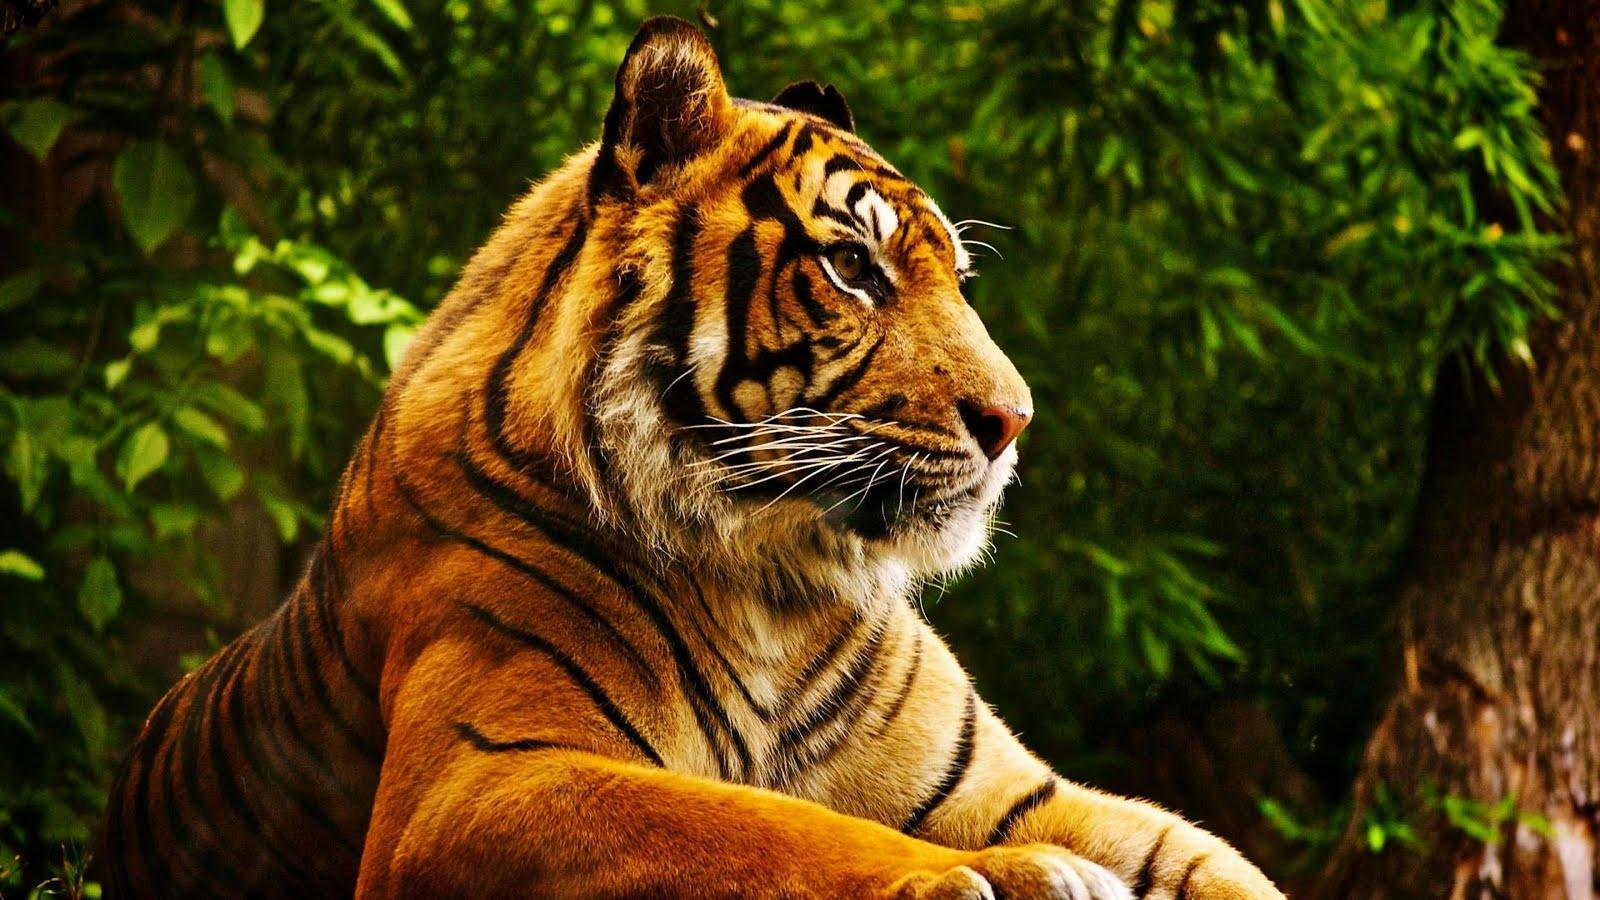 Wallpapers For > Cool Tiger Wallpapers Hd